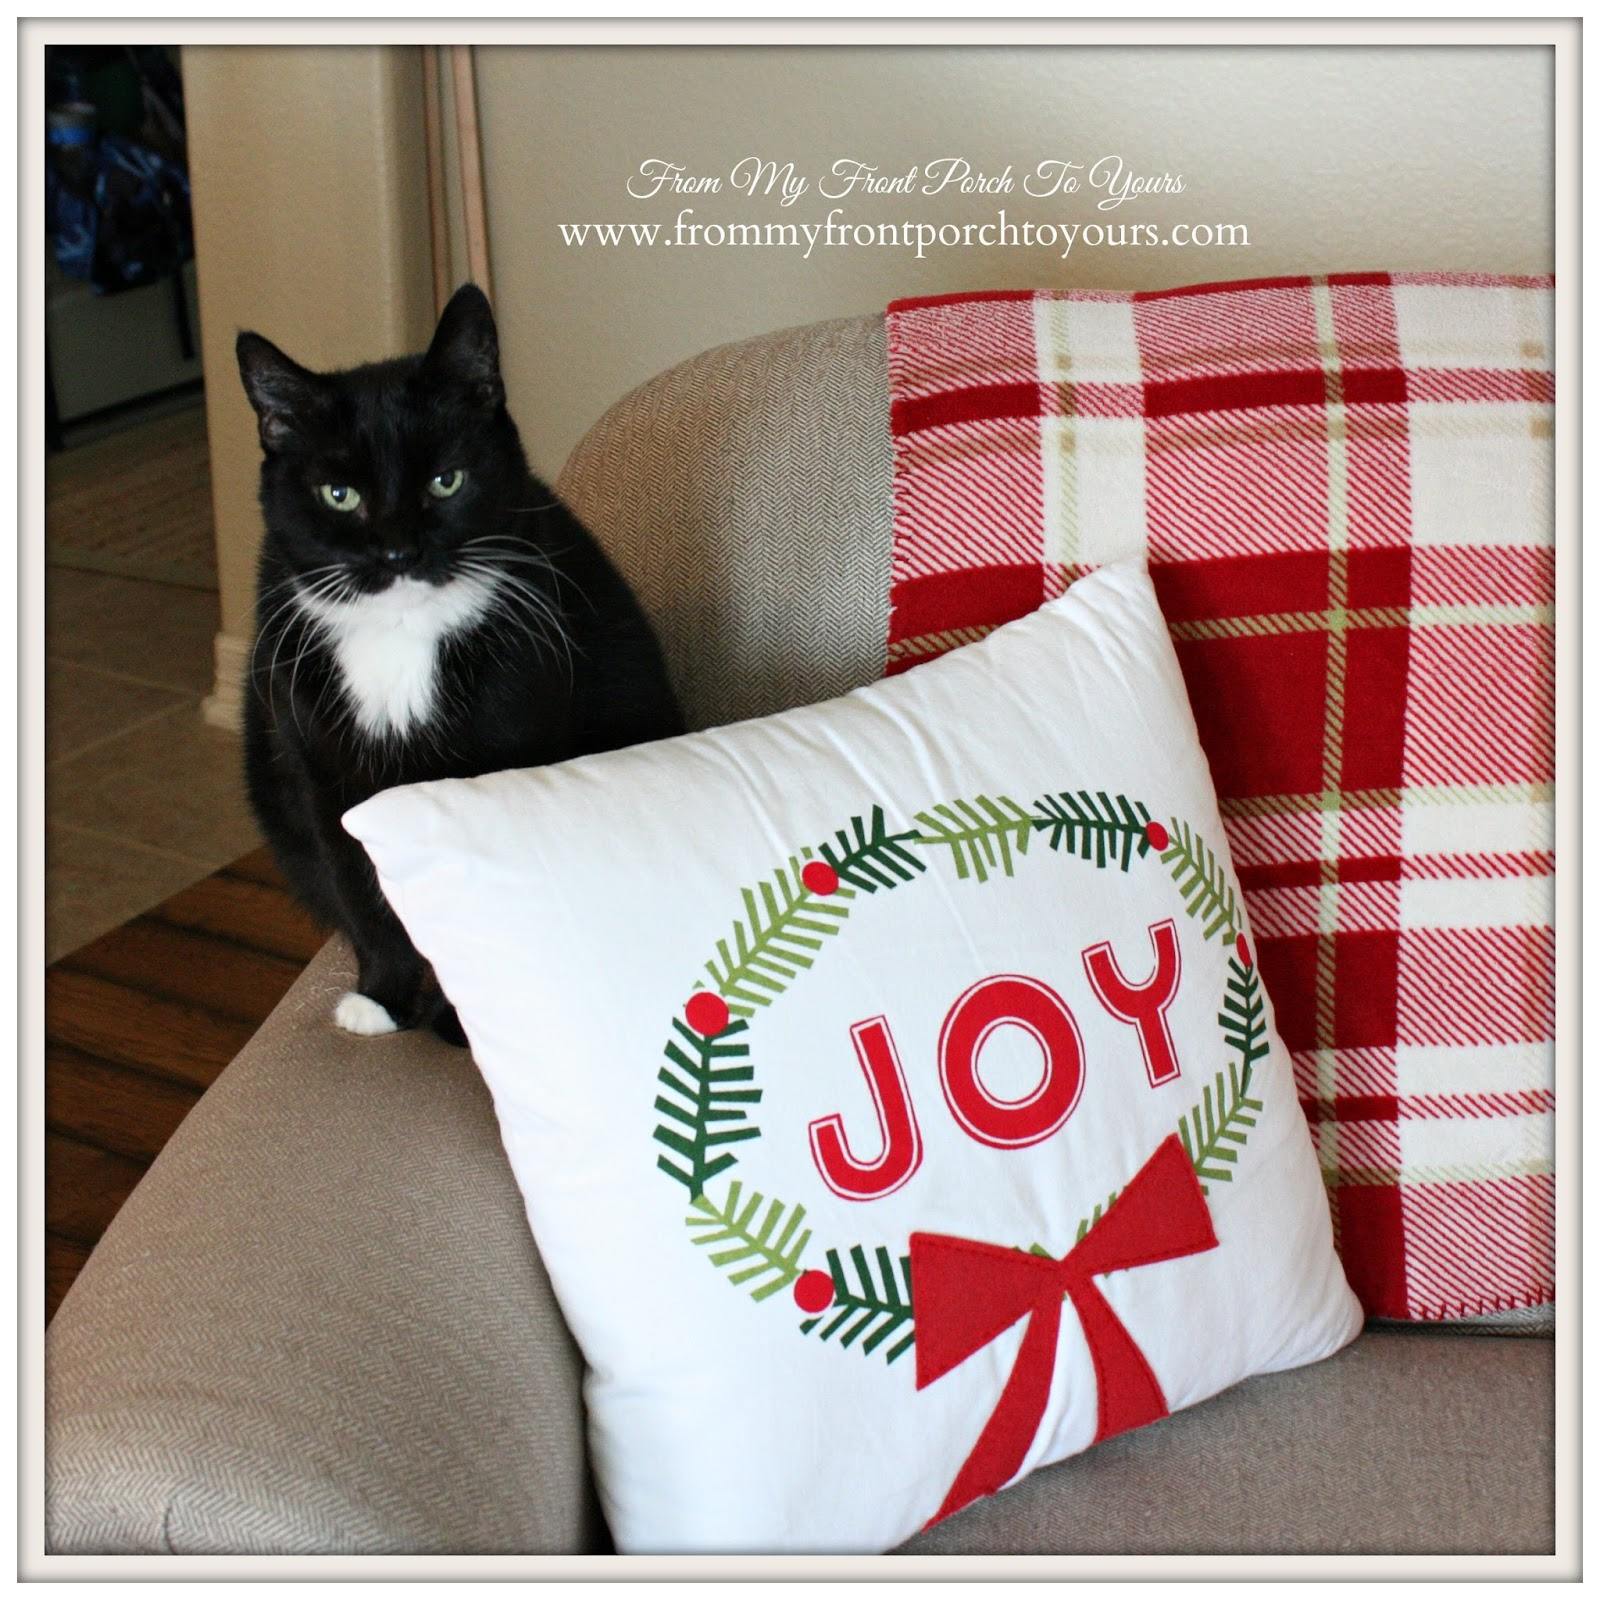 Joy- Pillow- Farmhouse -Vintage -Christmas -Living Room-Christmas Kitty- From My Front Porch To Yours